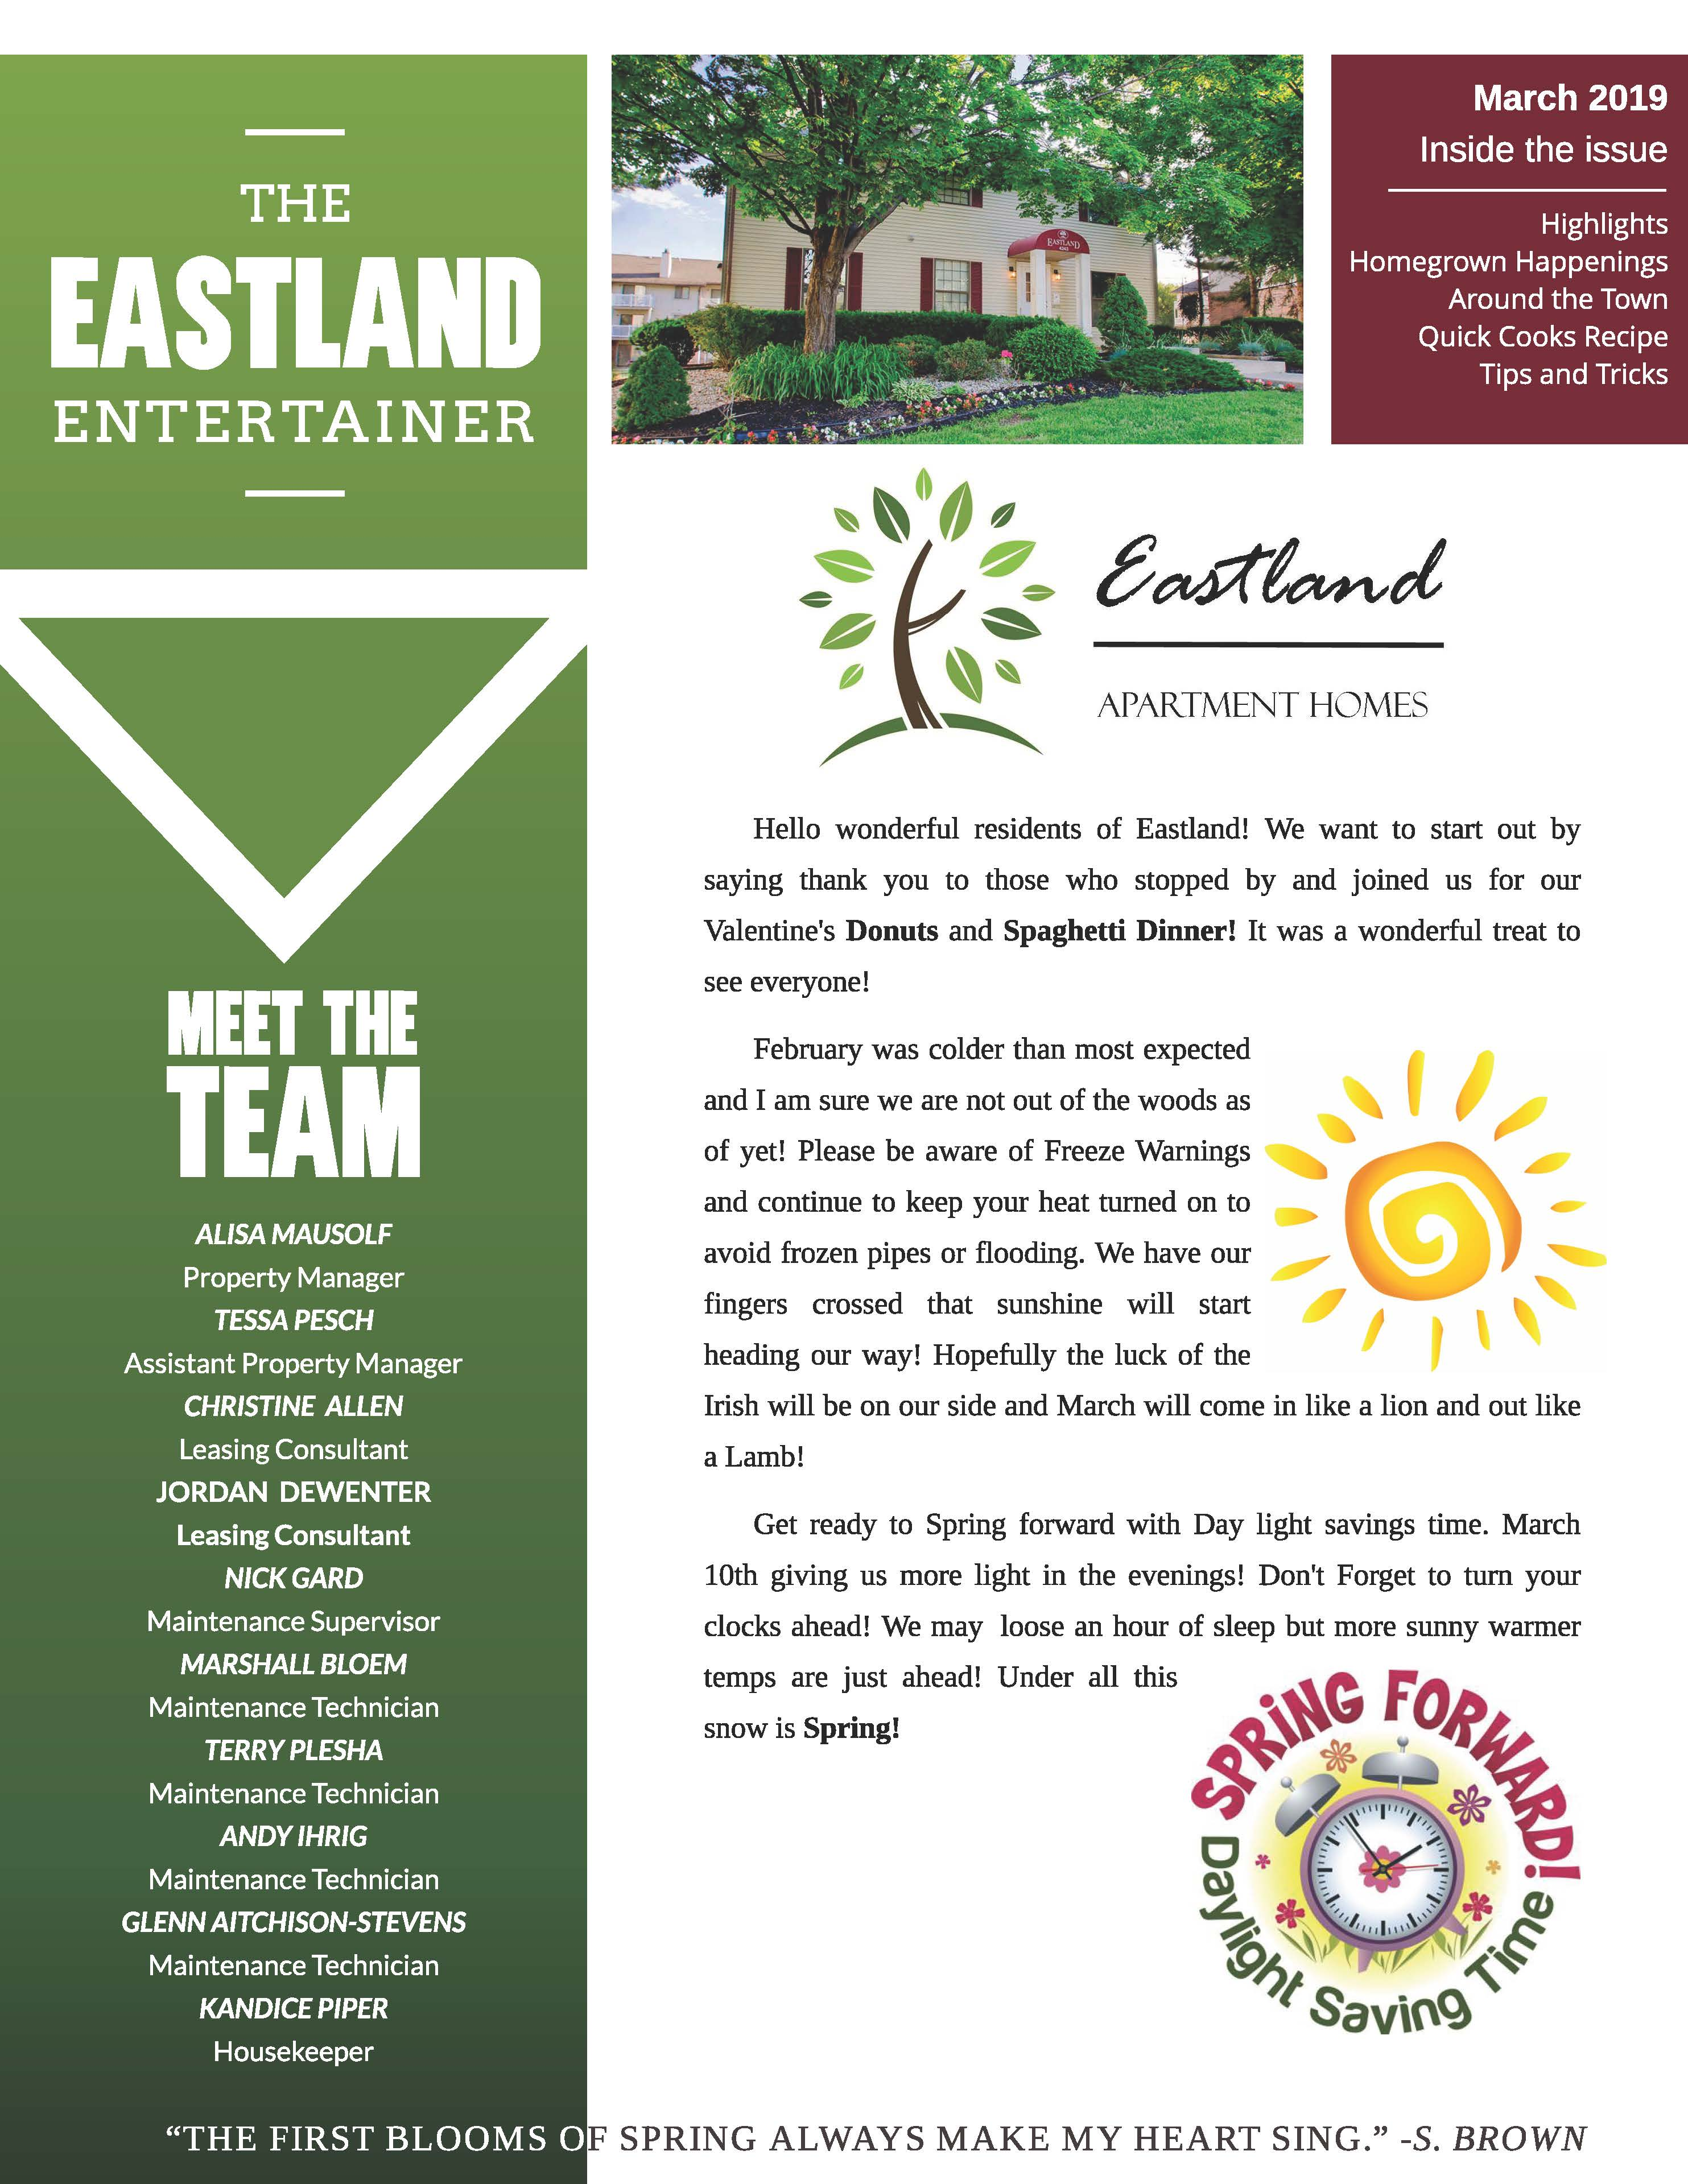 March 2019 Newsletter The Eastland Entertainer